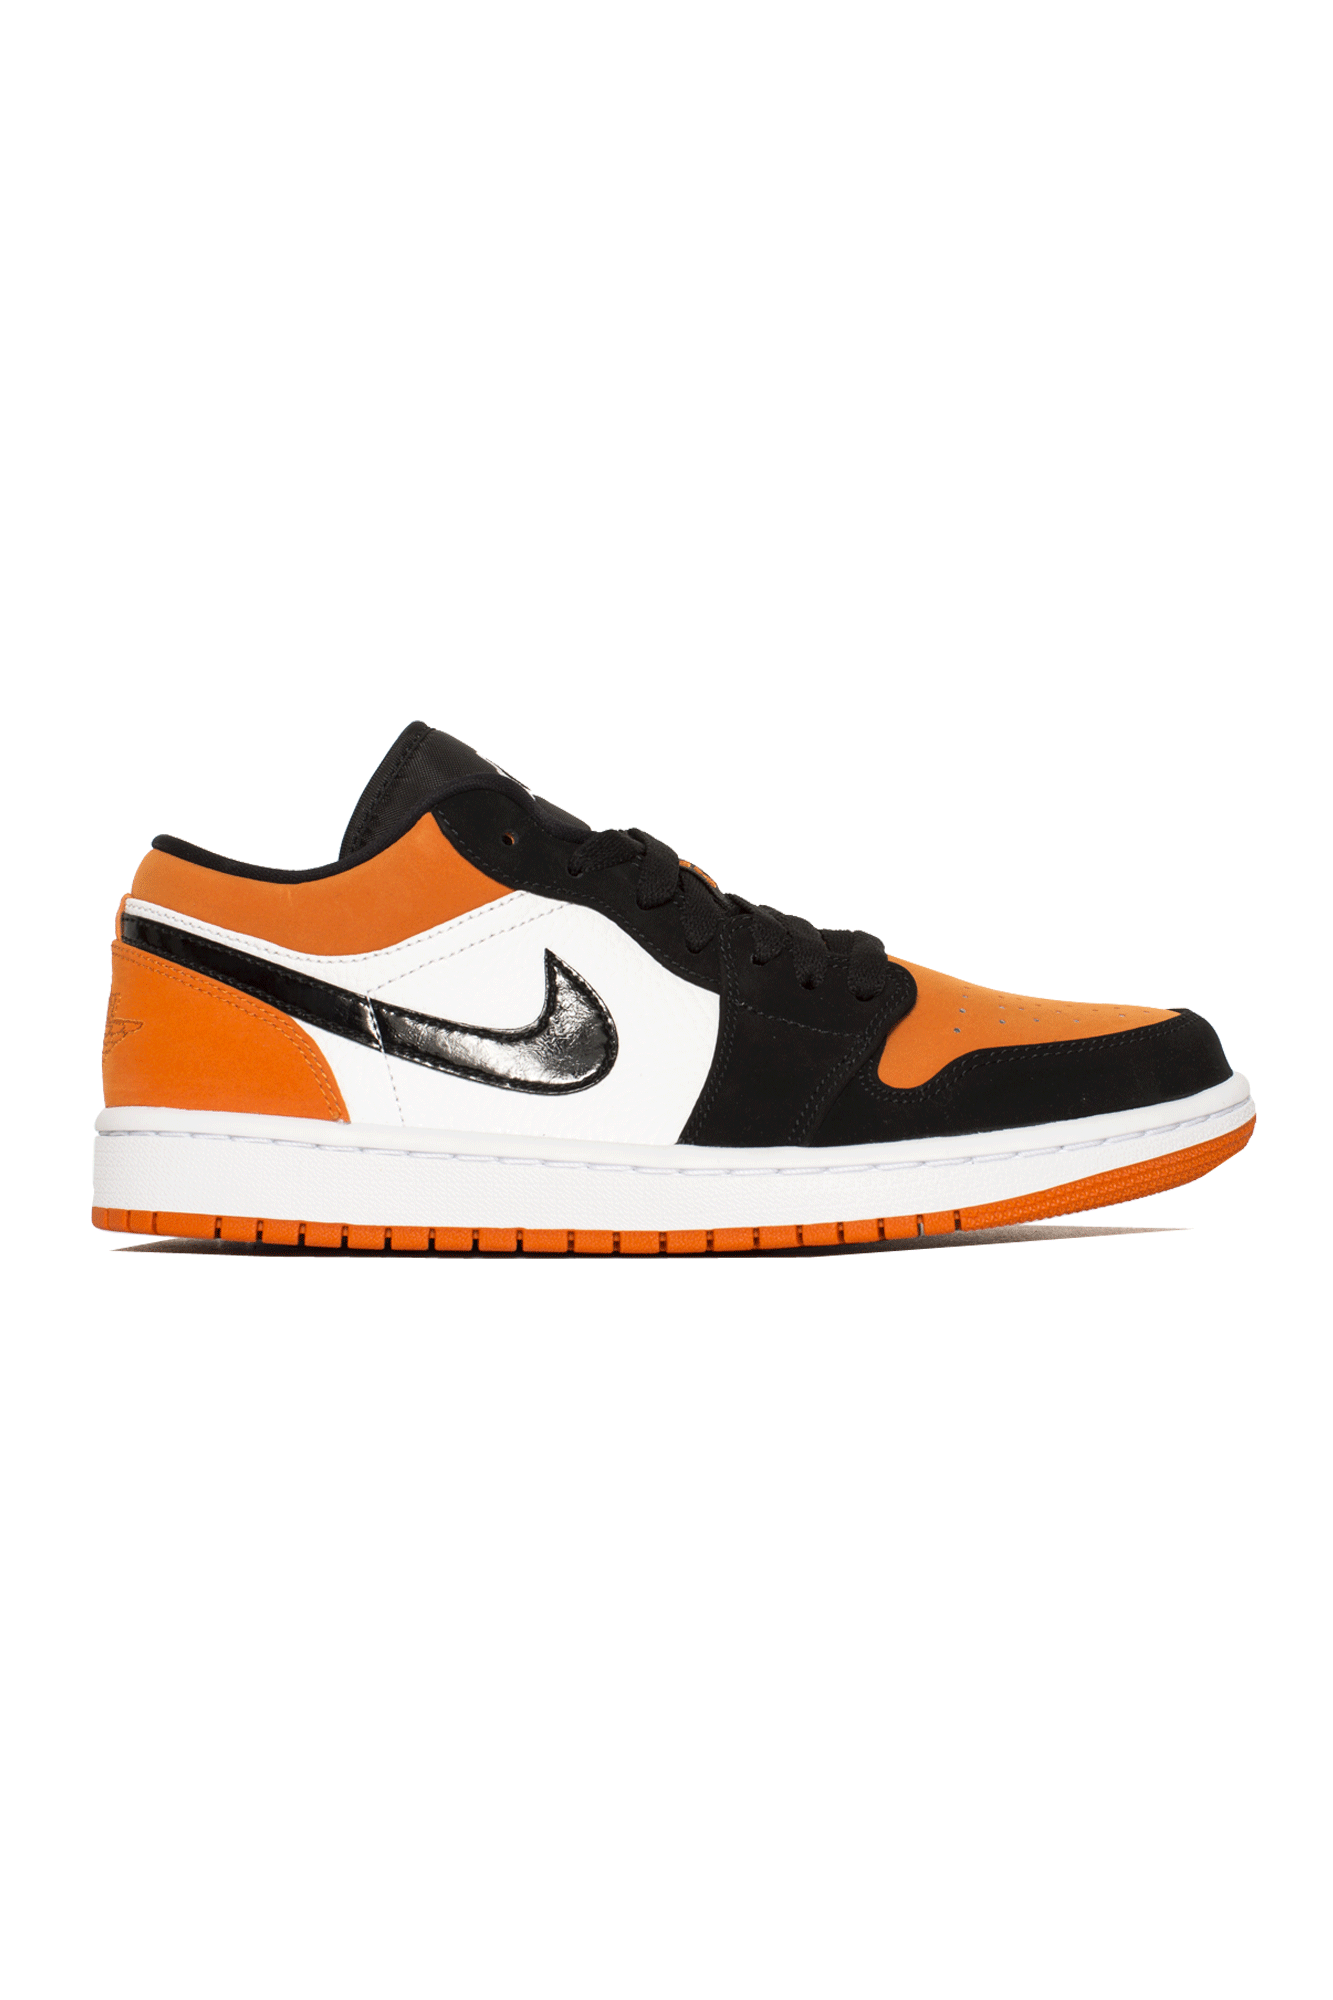 Nike Sneakers 1 Low Orange 553558-#000#128#7 - One Block Down